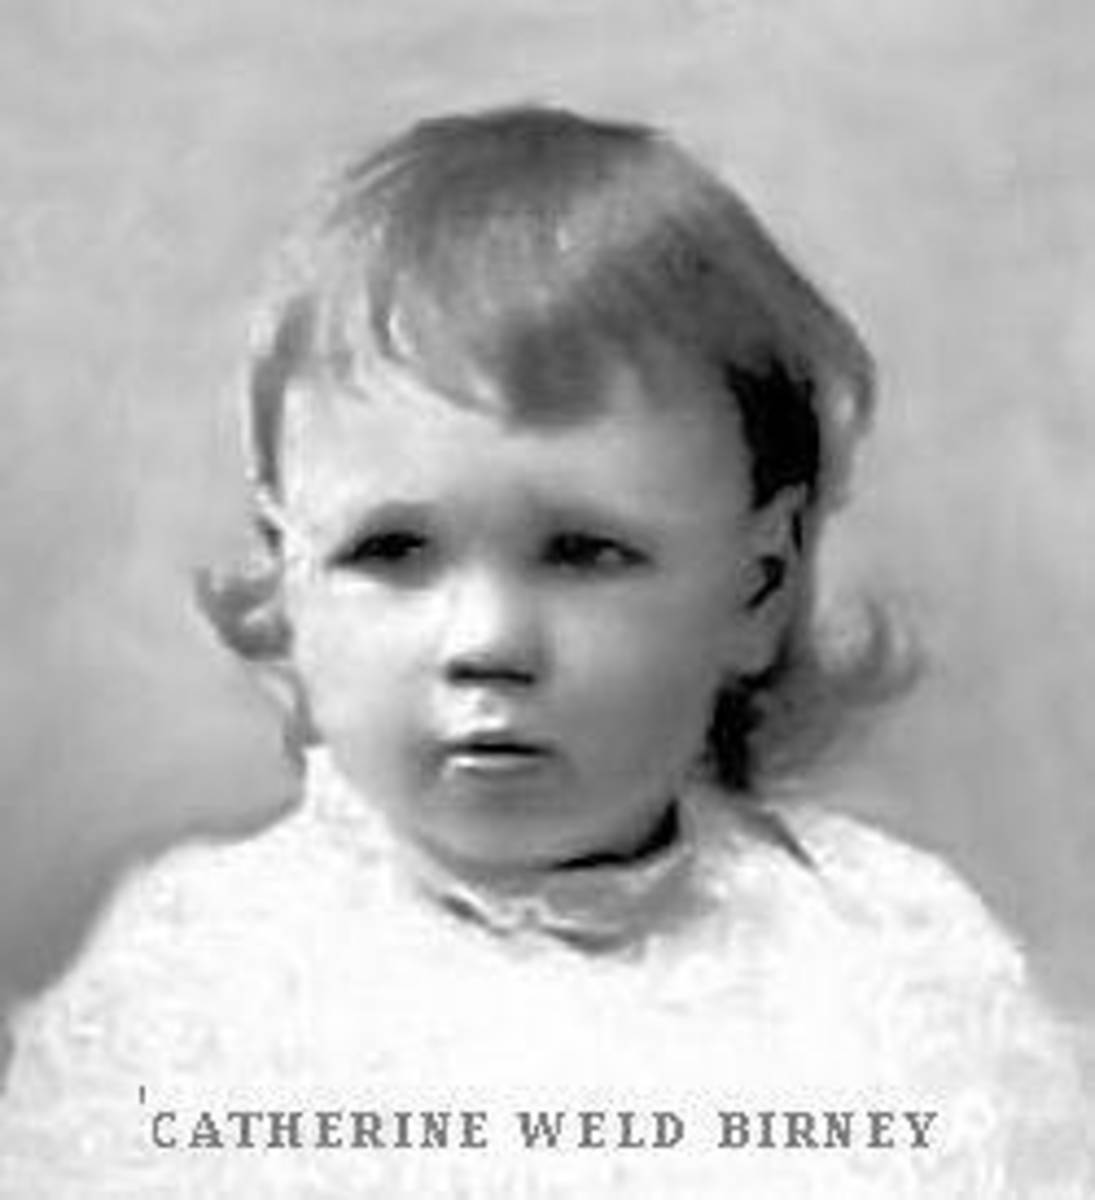 Catherine Weld Birney as a child.  Born on 11 Oct 1893, Catherine Weld Birney was the second of Alice McLellan Birney's three daughters, and the oldest of the two daughters born to Alice and Theodore Birney.